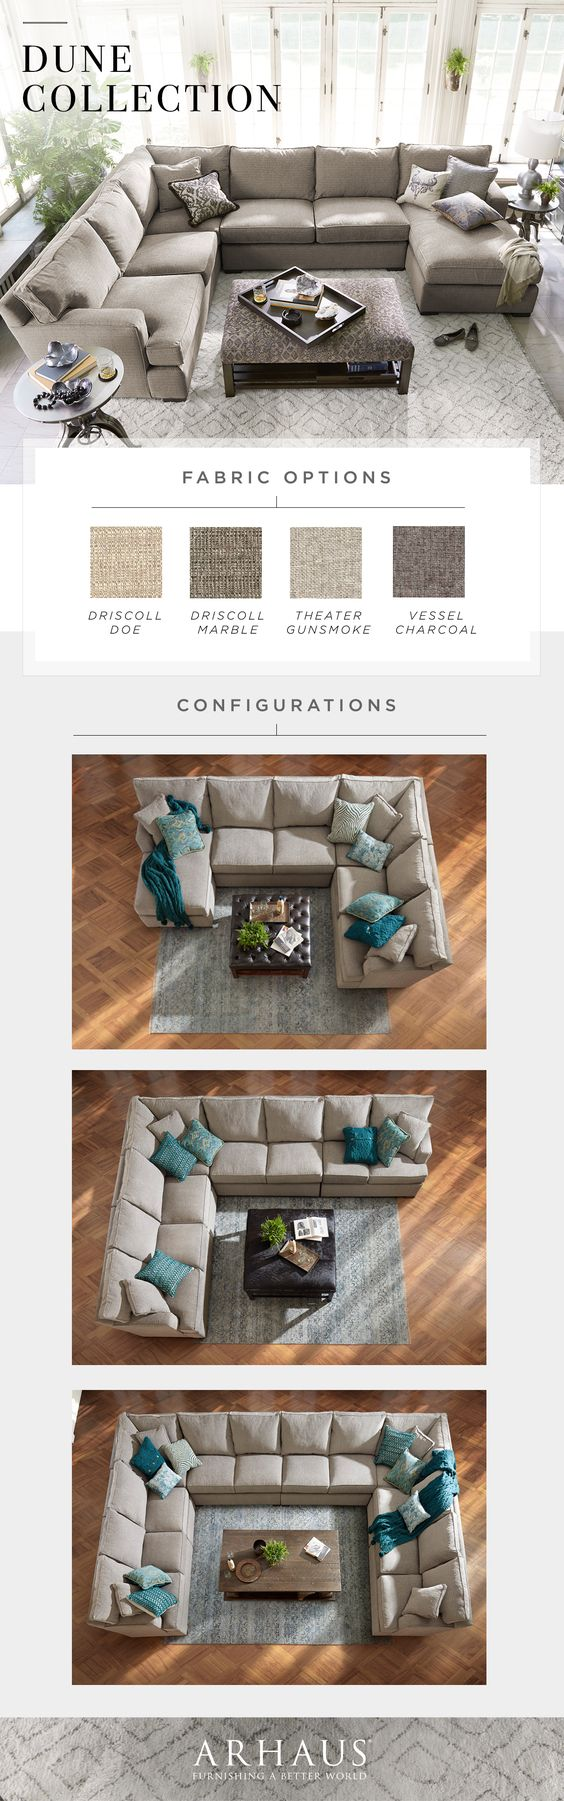 With a variety of pieces and upholstery options, Dune makes it easy to customize your comfort.